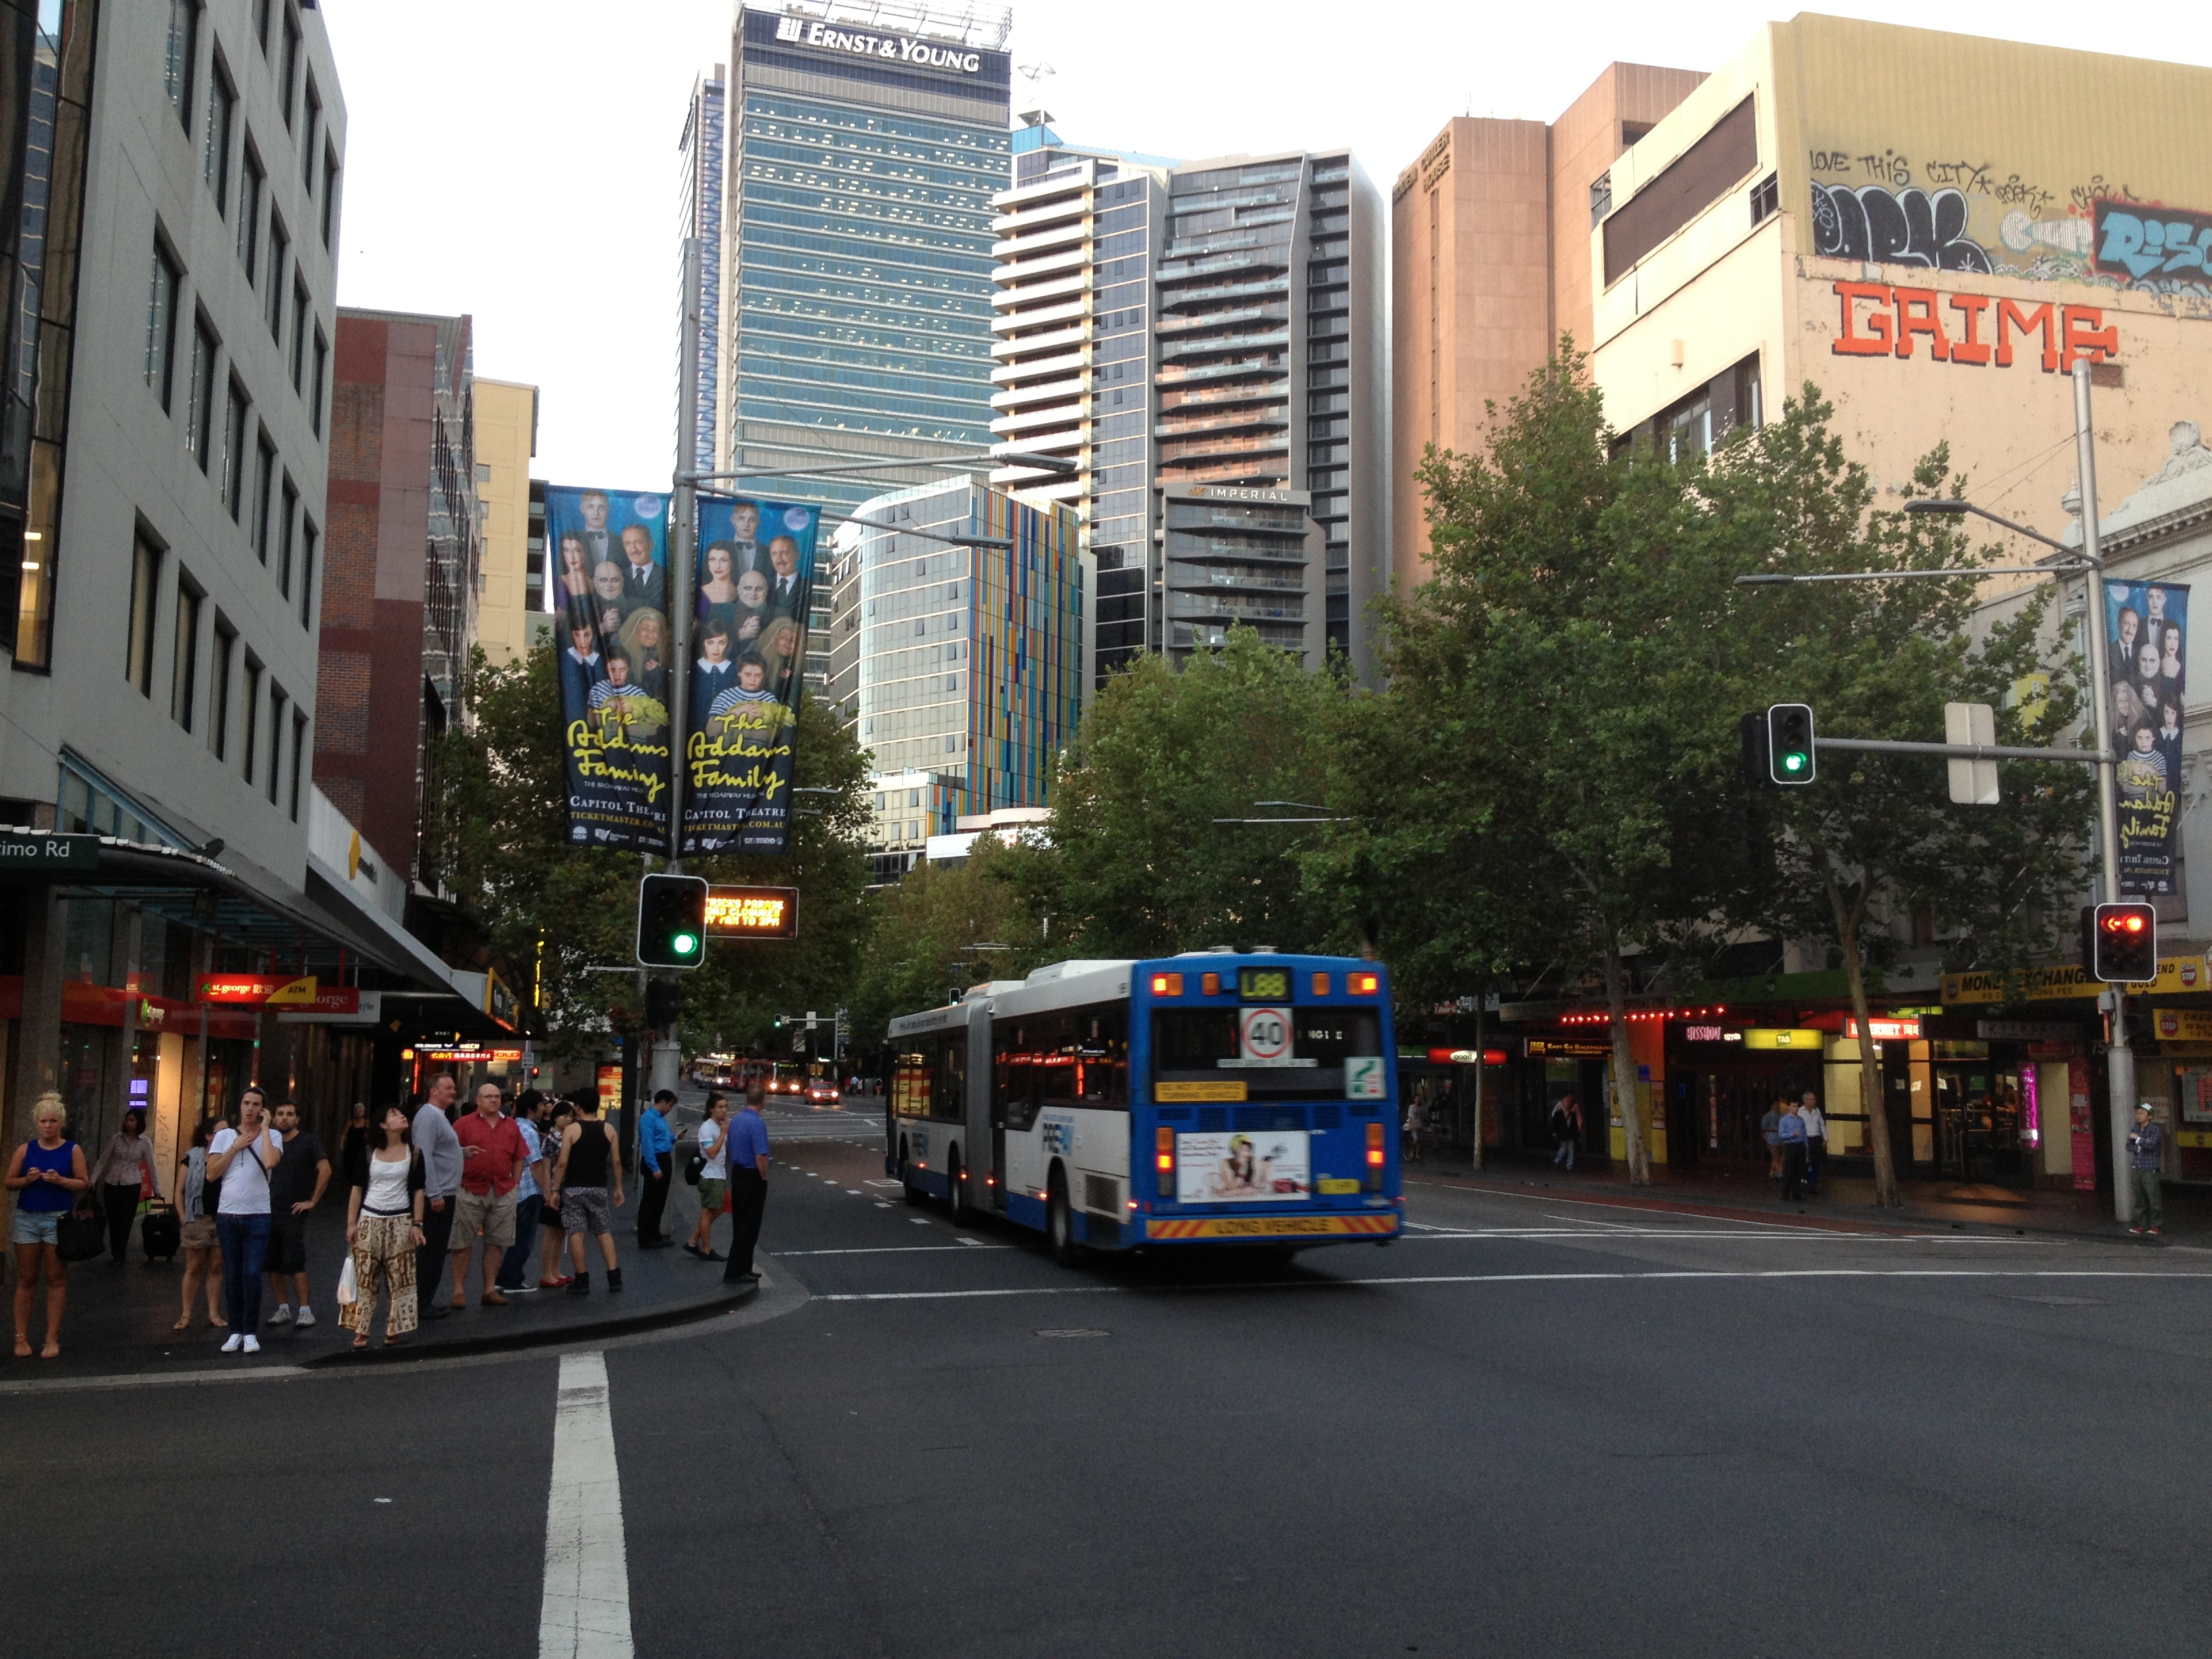 Spending on smaller scale feared as light rail disruption draws near